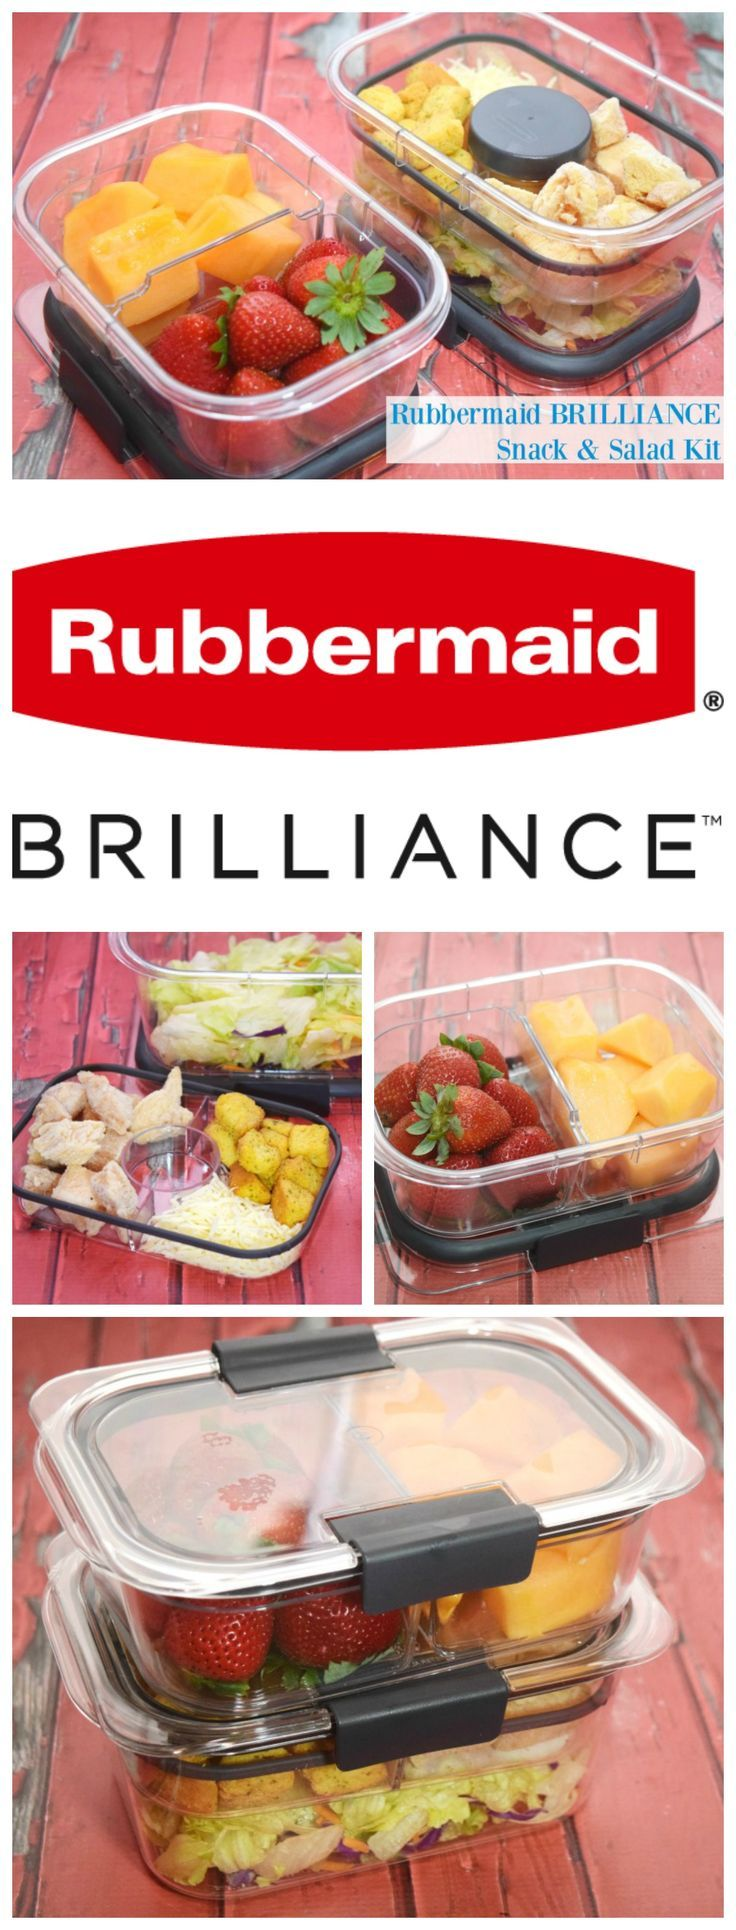 Love salad for lunch, but want to keep the toppings separate? Check out Rubbermaid BRILLIANCE!  You'll love bringing lunch to work with it! #StoredBrilliantly! #ad @SheSpeaksUp